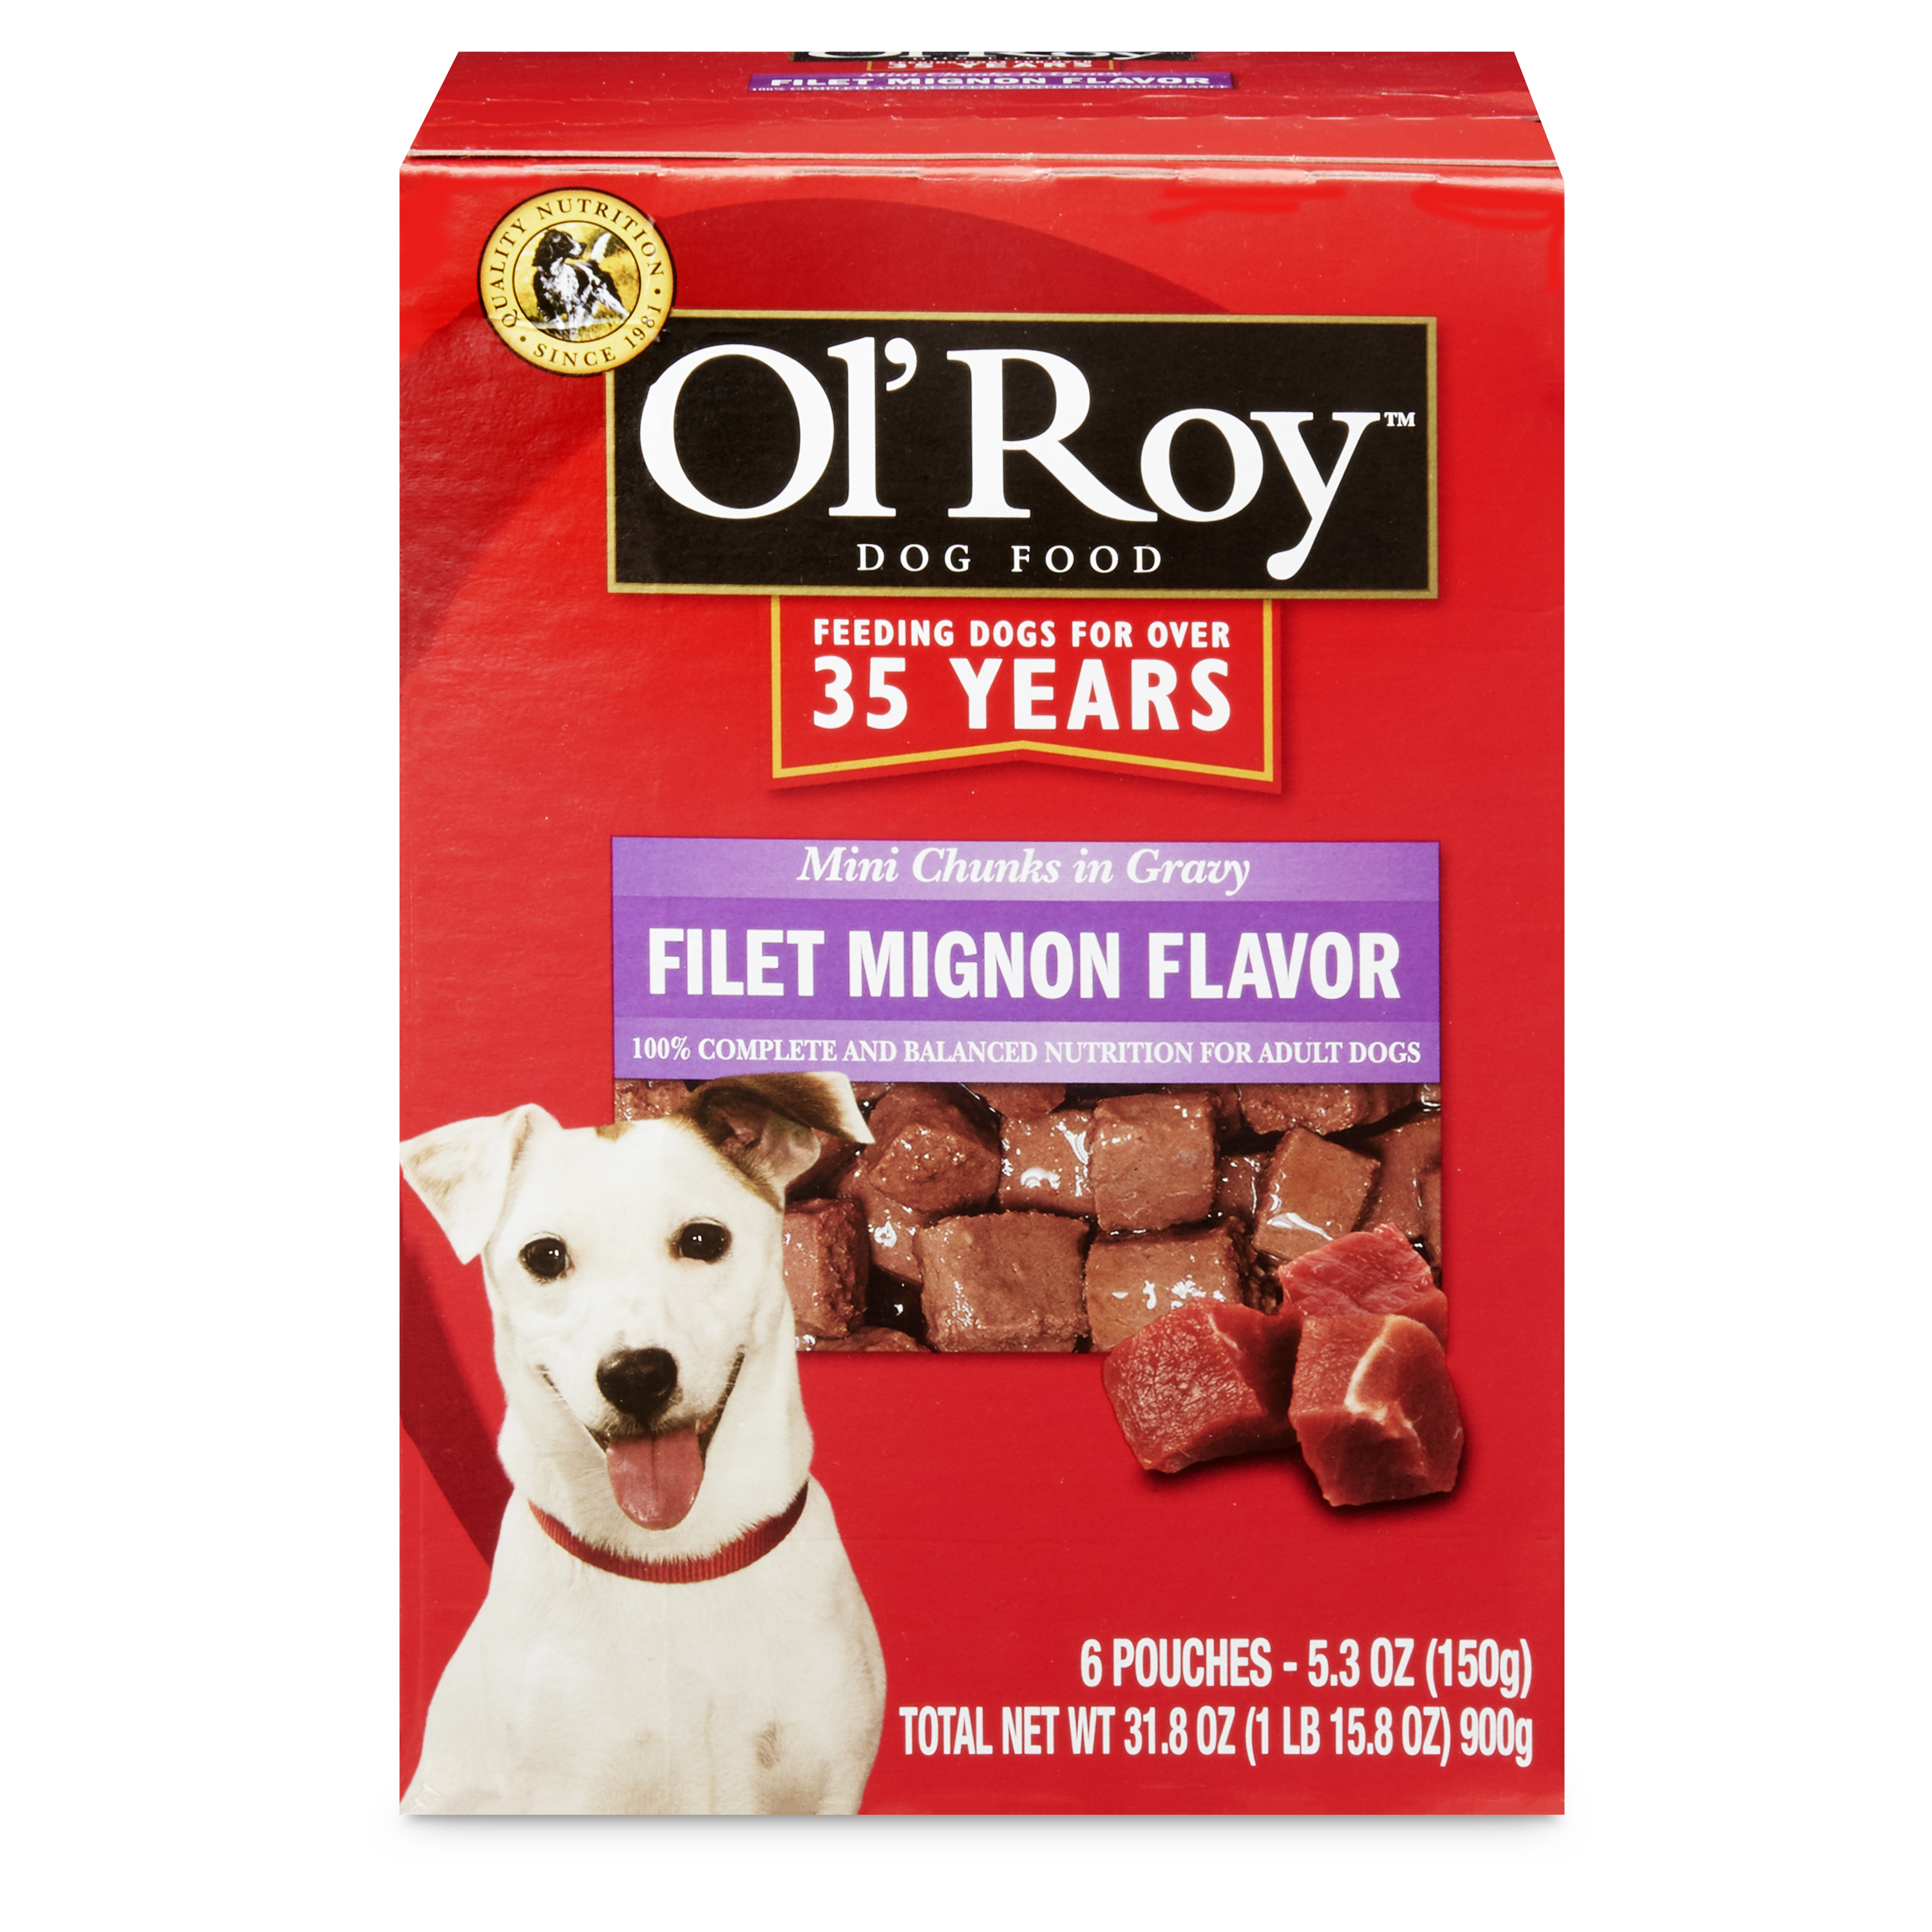 Ol' Roy Mini Chunks in Gravy Wet Dog Food, Filet Mignon Flavor, 31.8 oz, 6 Count, 3 Pack